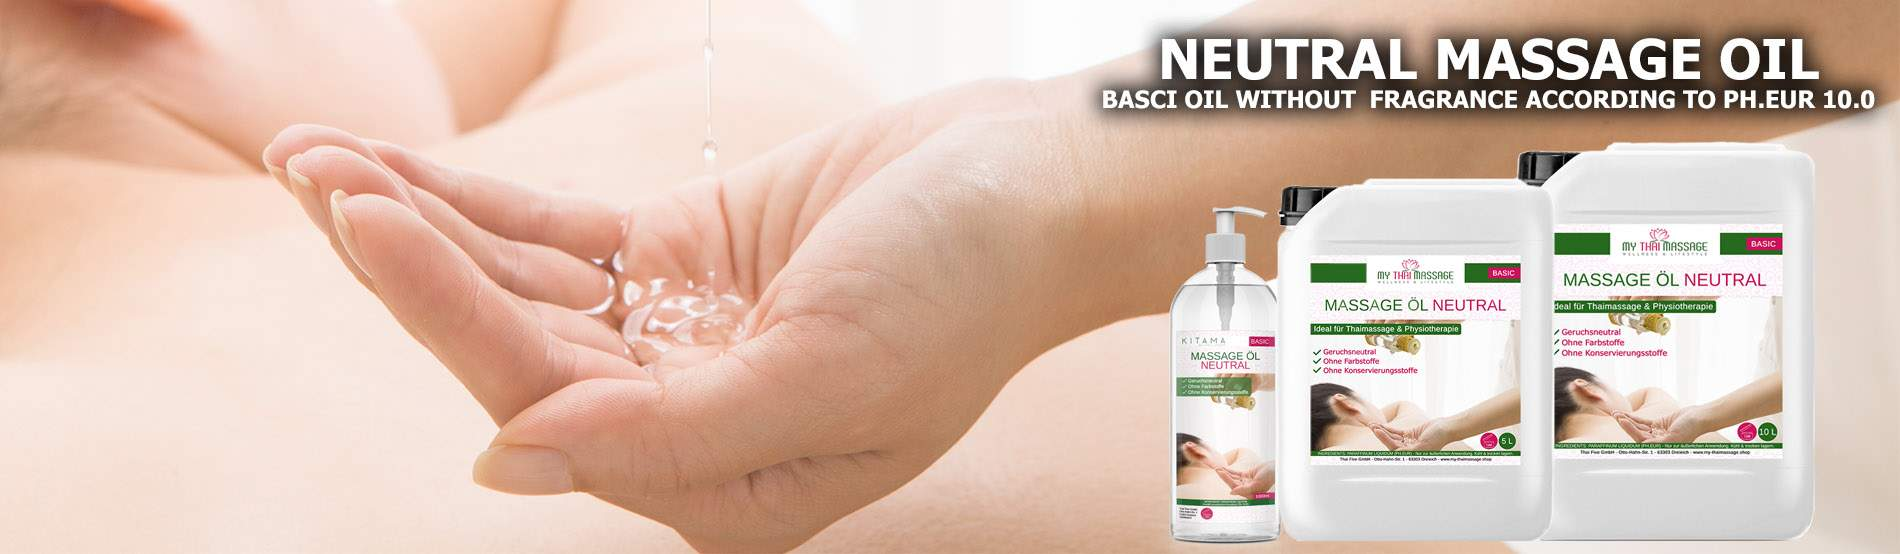 Basic Massage Oil Neutral